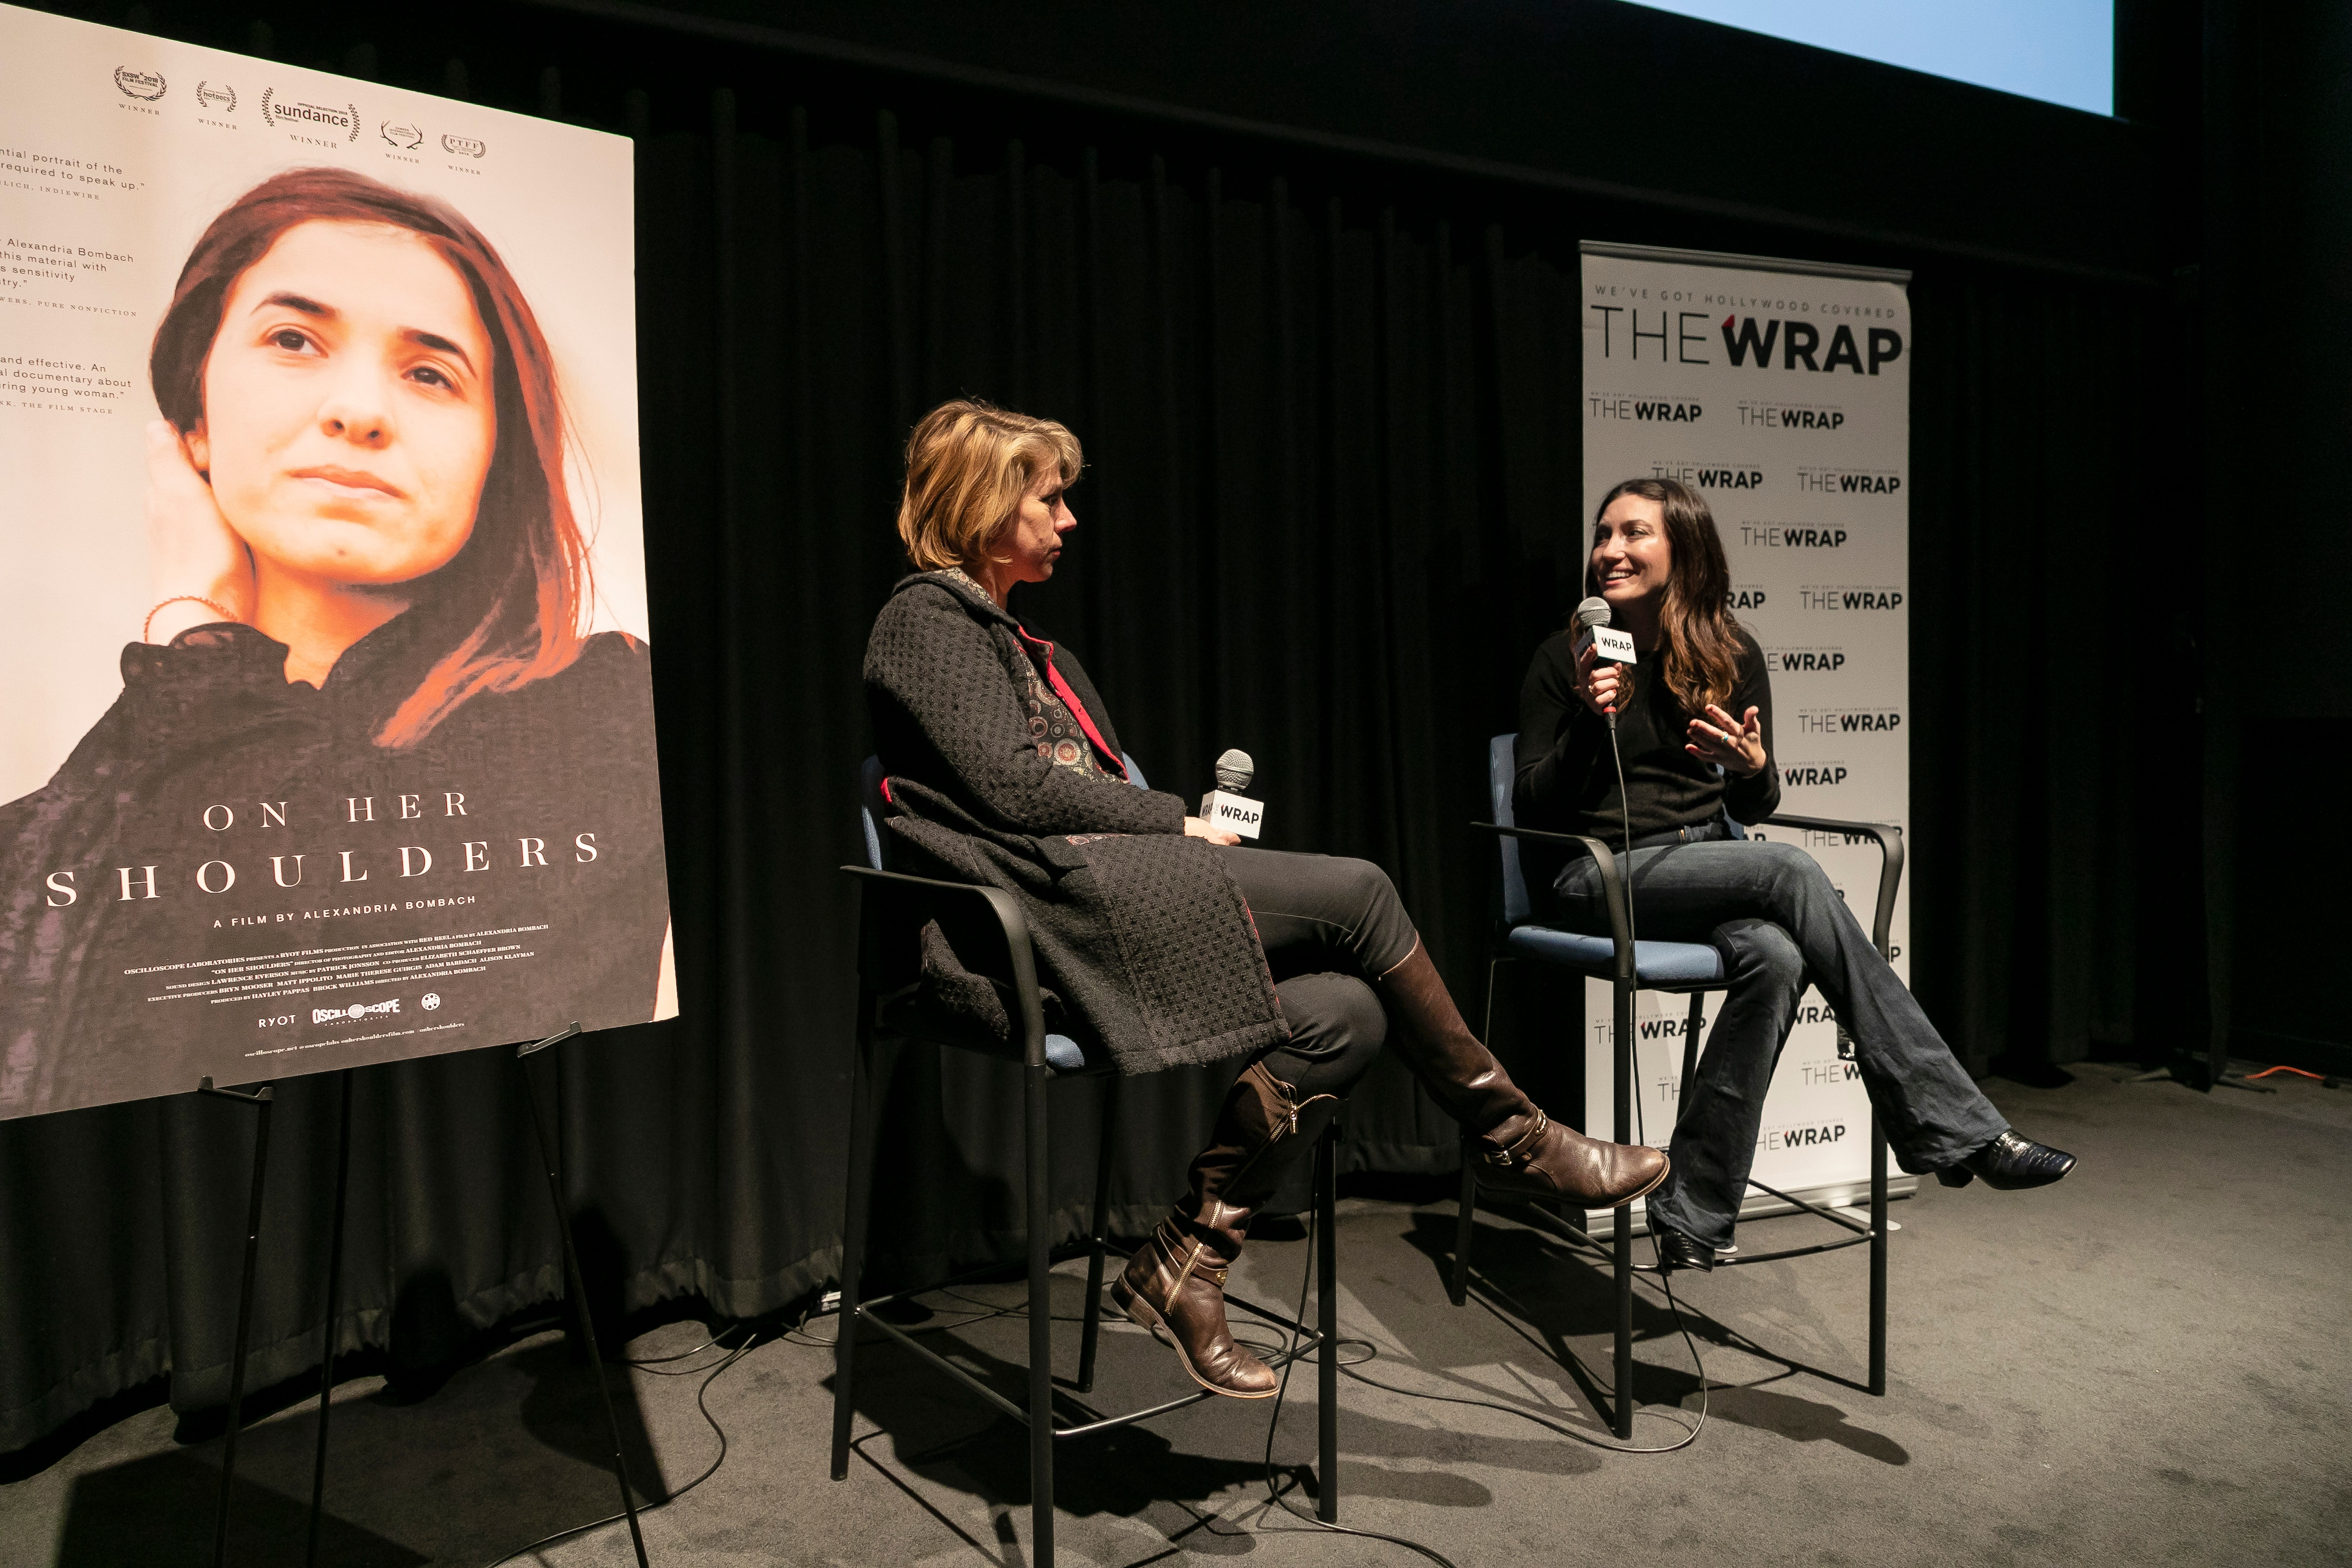 """On Her Shoulders"" screening and Q&A with producer Hayley Pappas. Hosted by the Wrap and held at the Landmark Theatre in West Los Angeles."